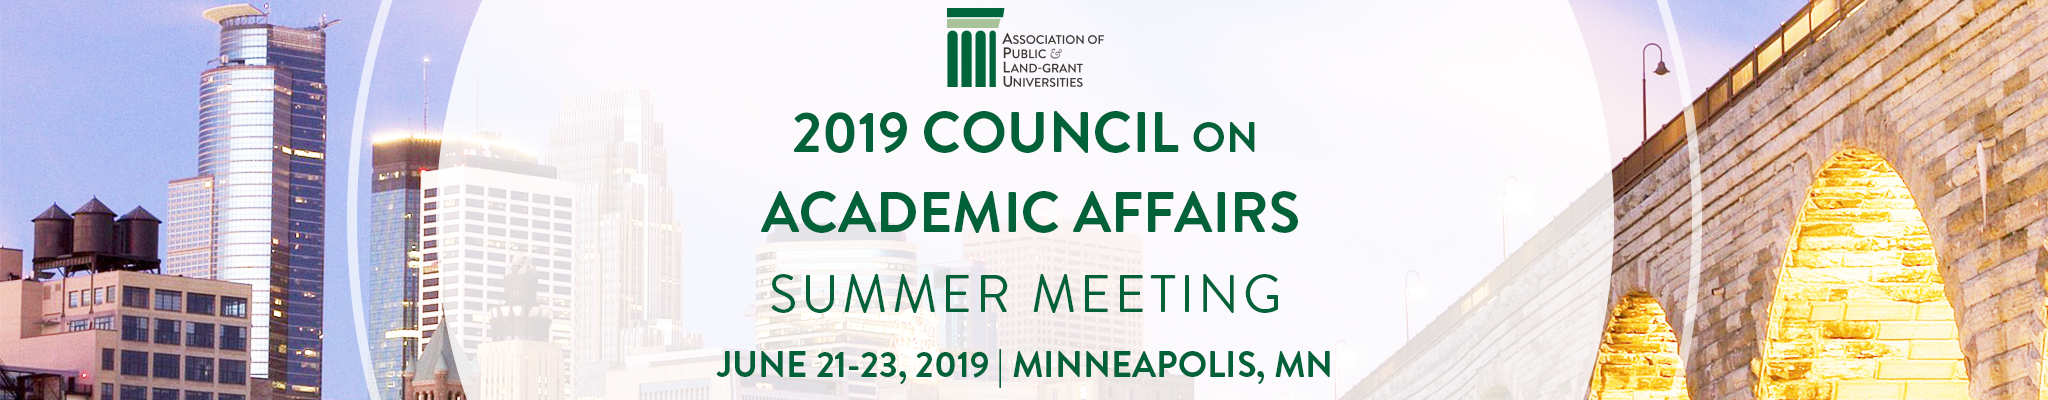 2019 Summer Meeting Banner